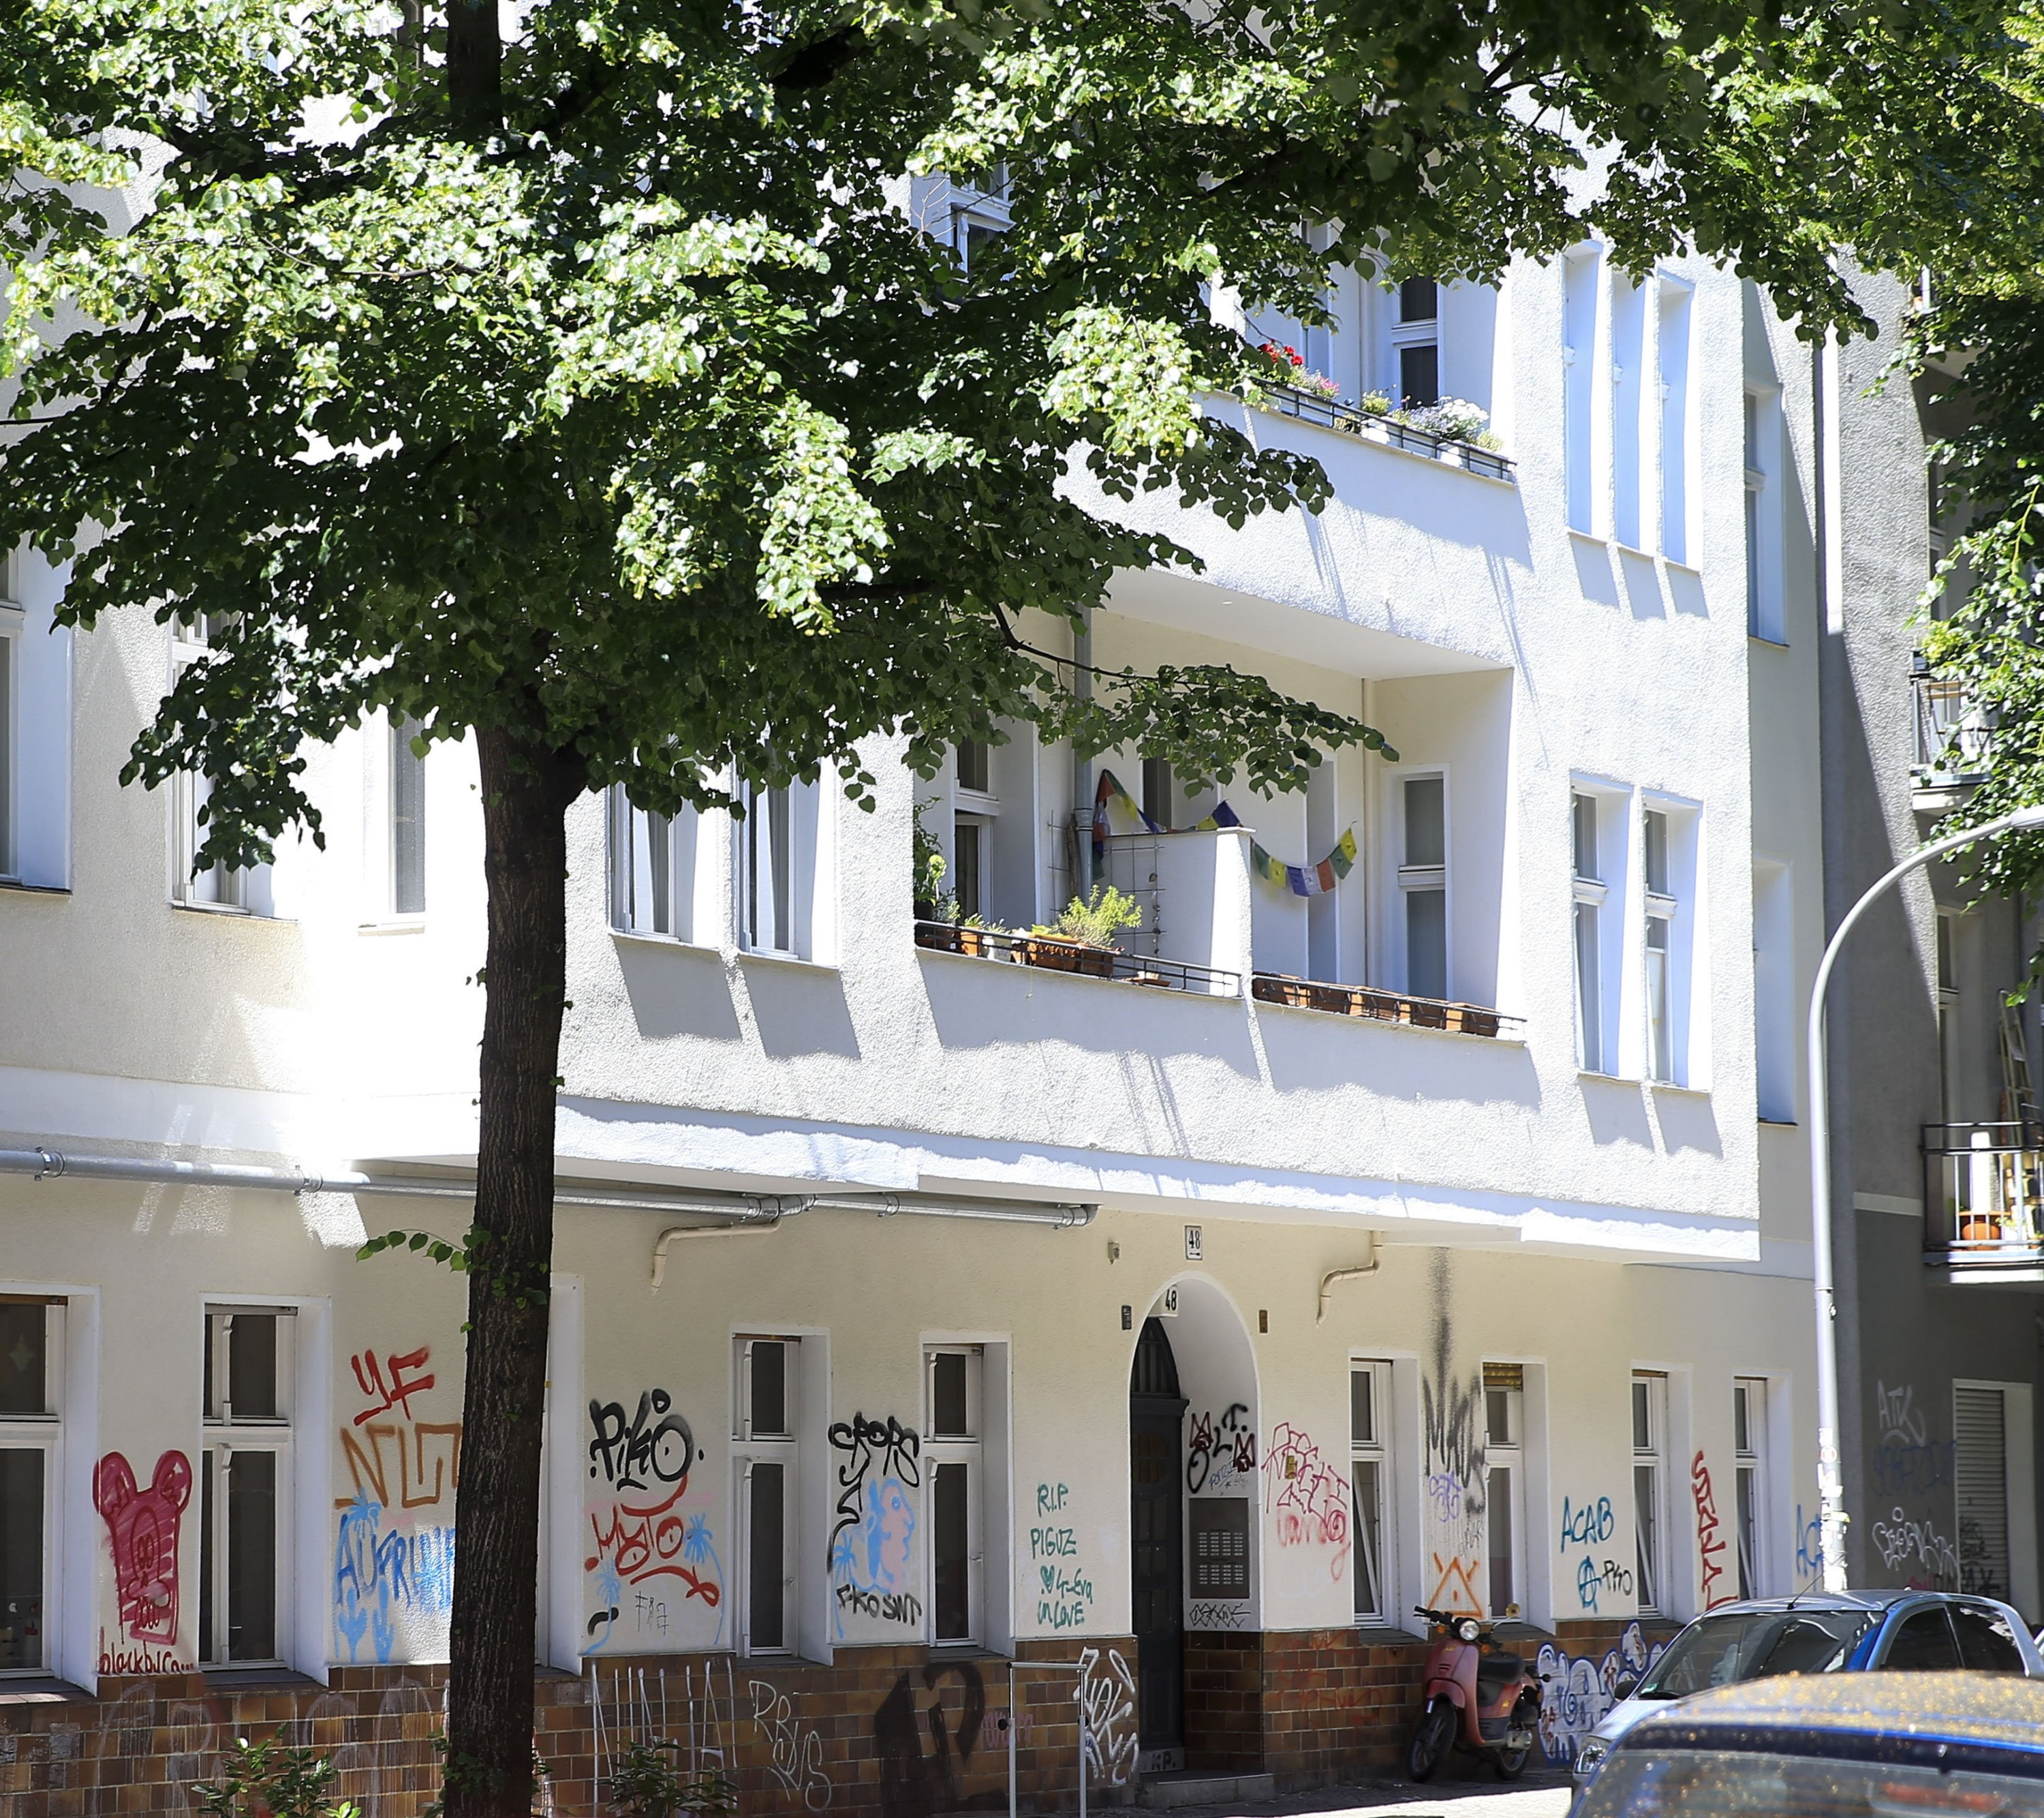 The building where Adil Öksüz was spotted in the Neukoelln district, Berlin, Germany, June 14, 2018. (AA Photo)